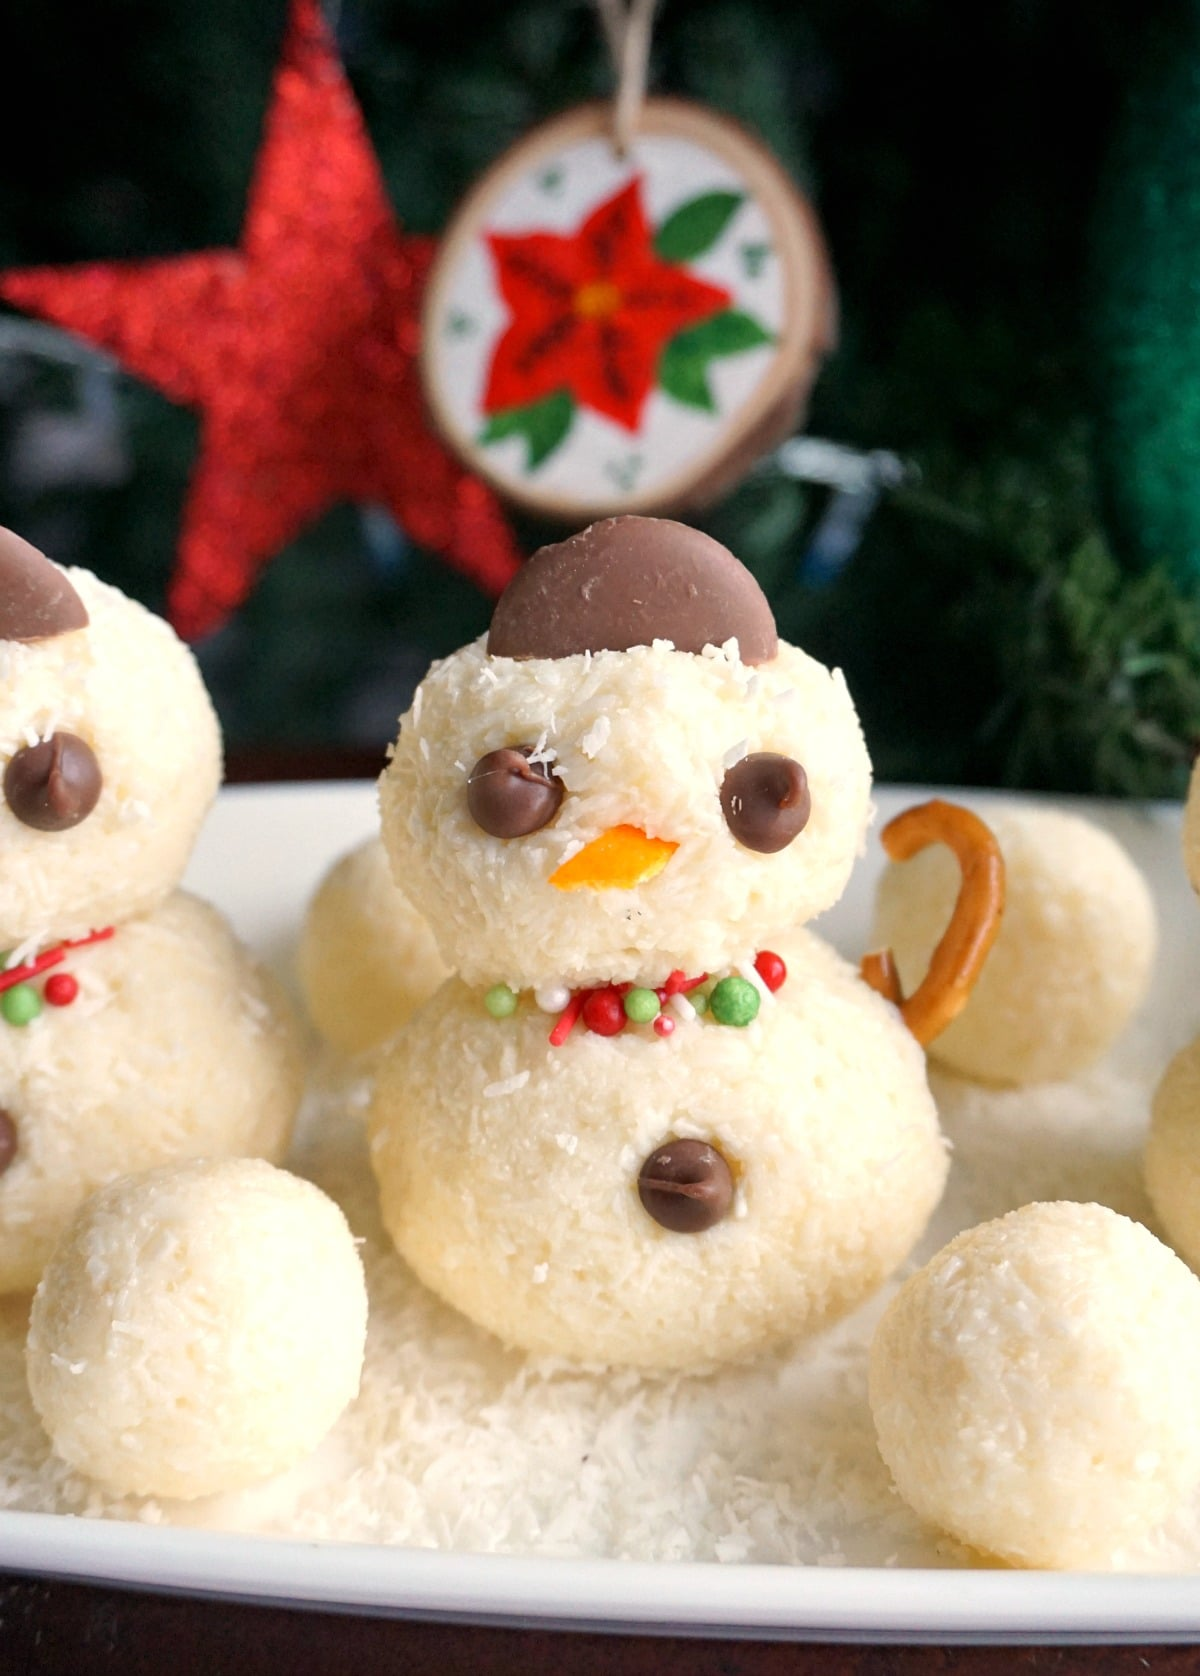 A snowman truffle and other truffles on a white rectangular plate